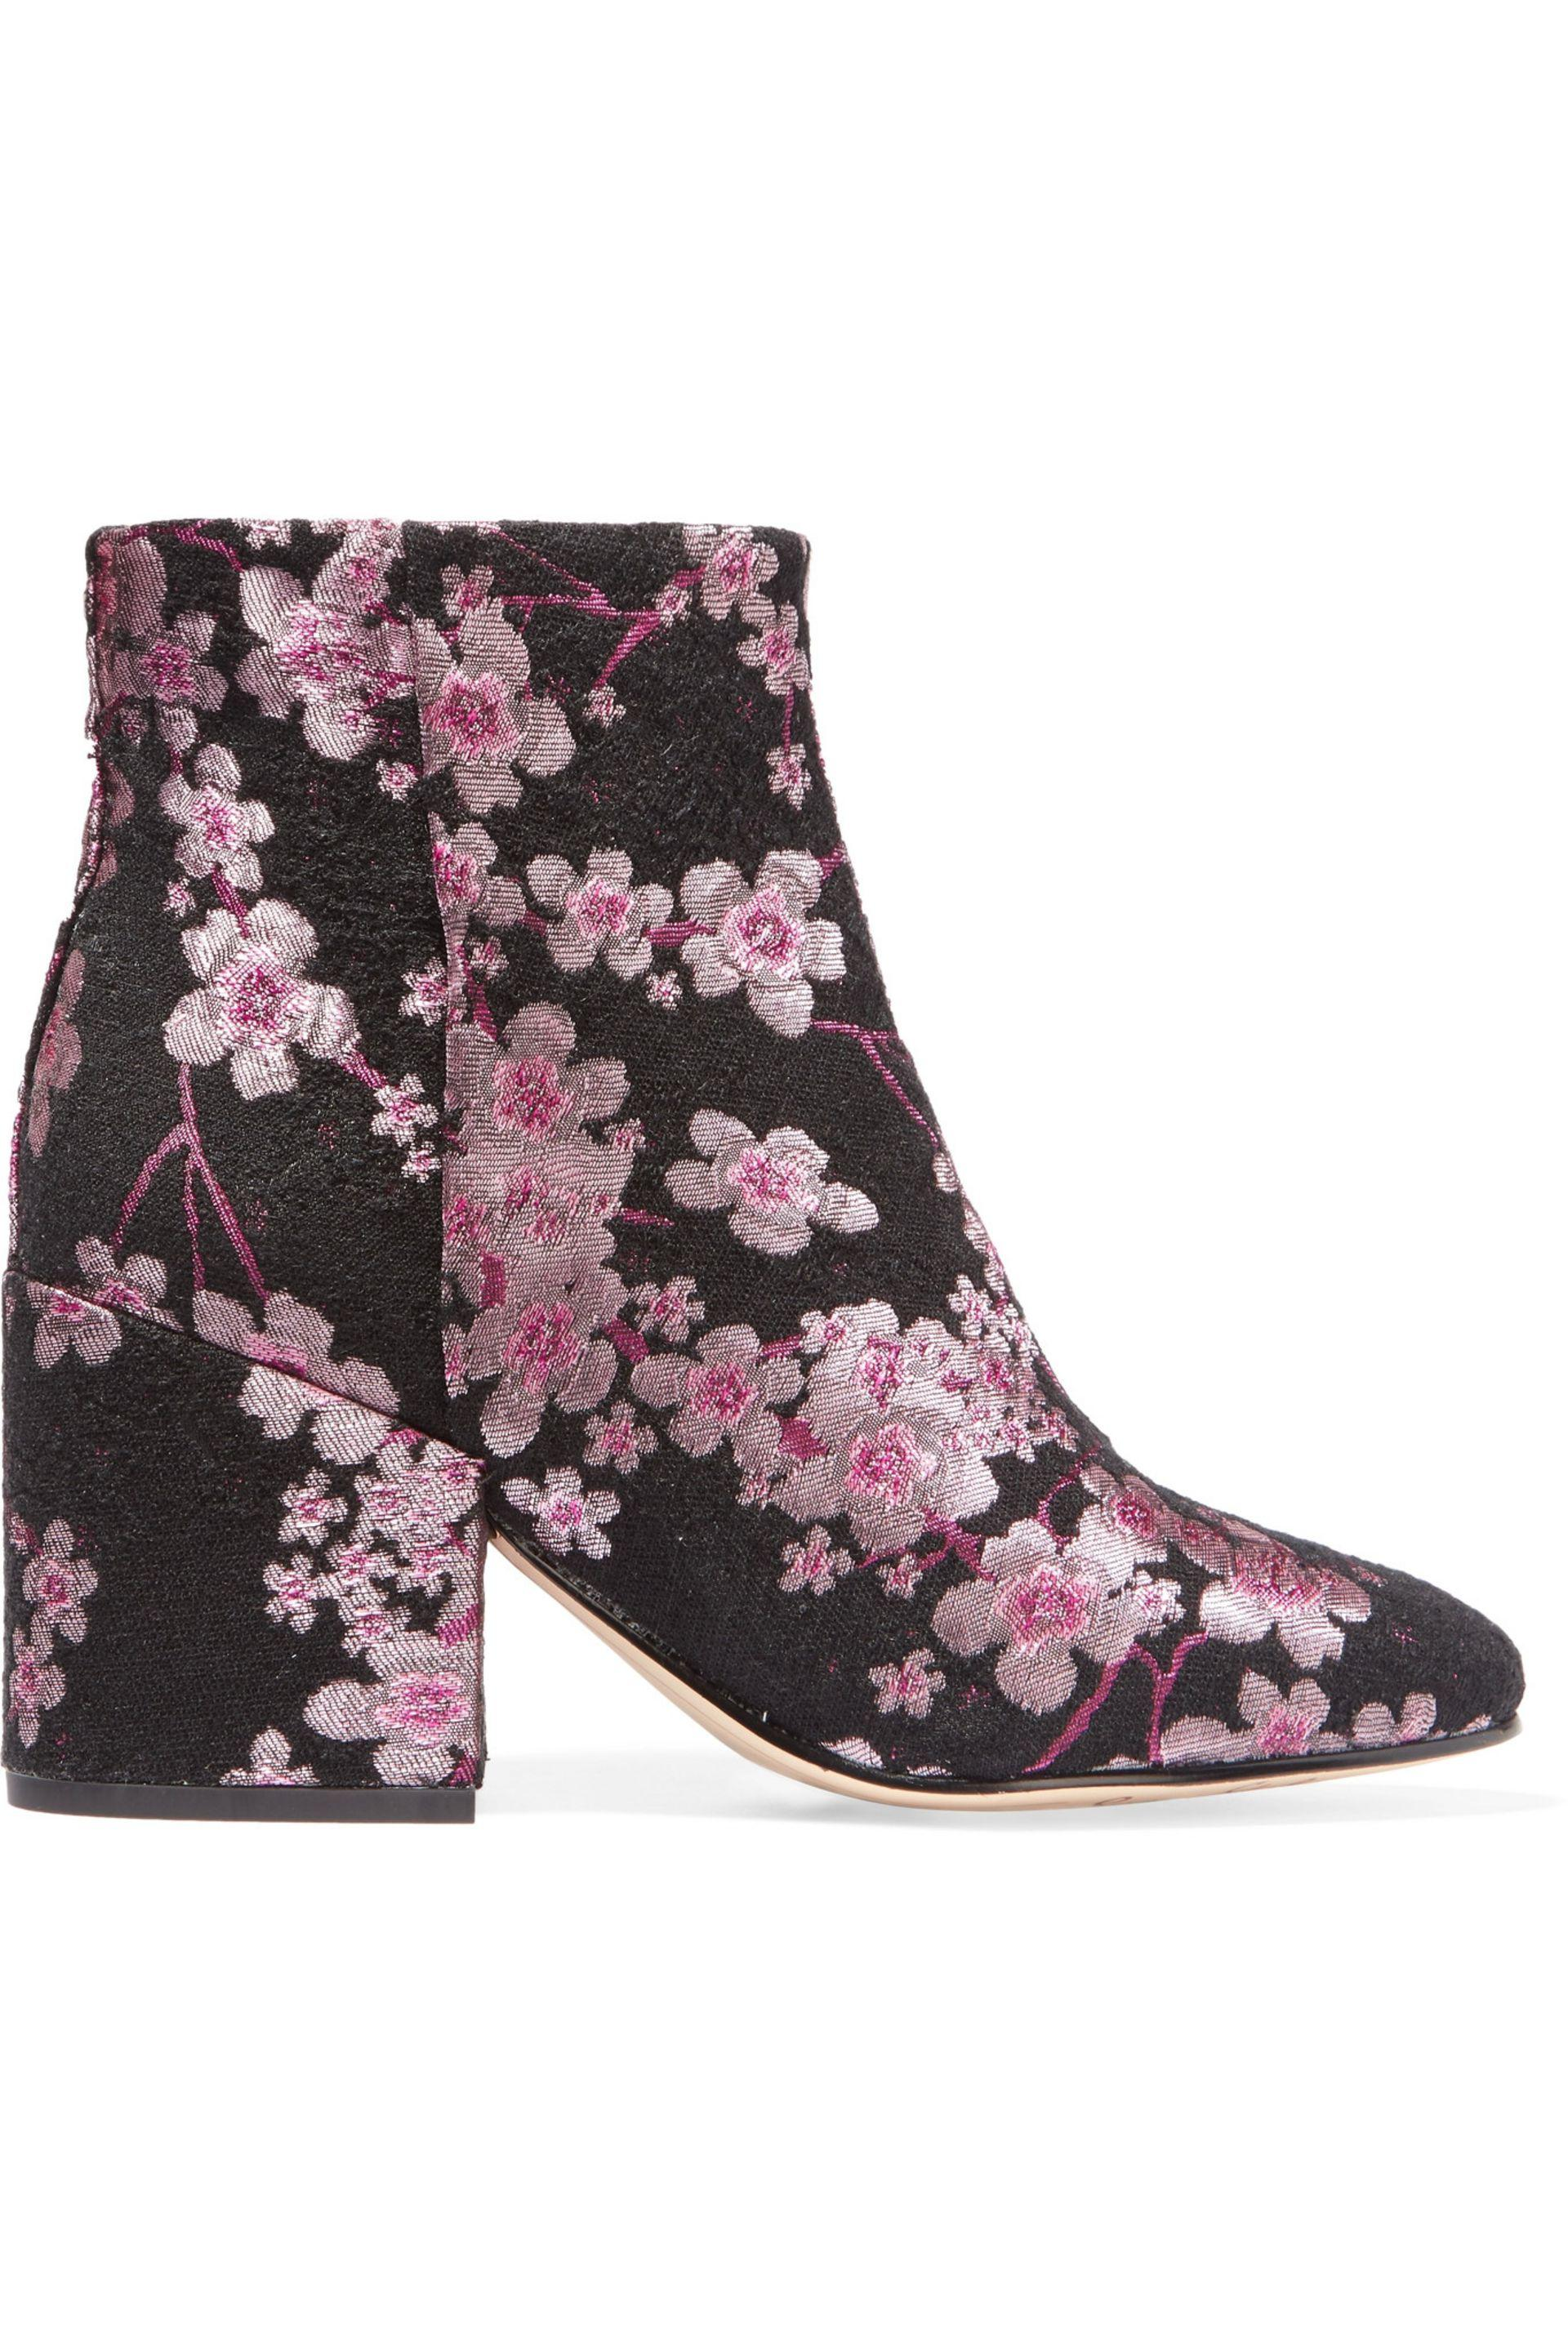 4e72d721f31 Sam Edelman Taye Floral-Brocade Ankle Boots in Pink - Lyst